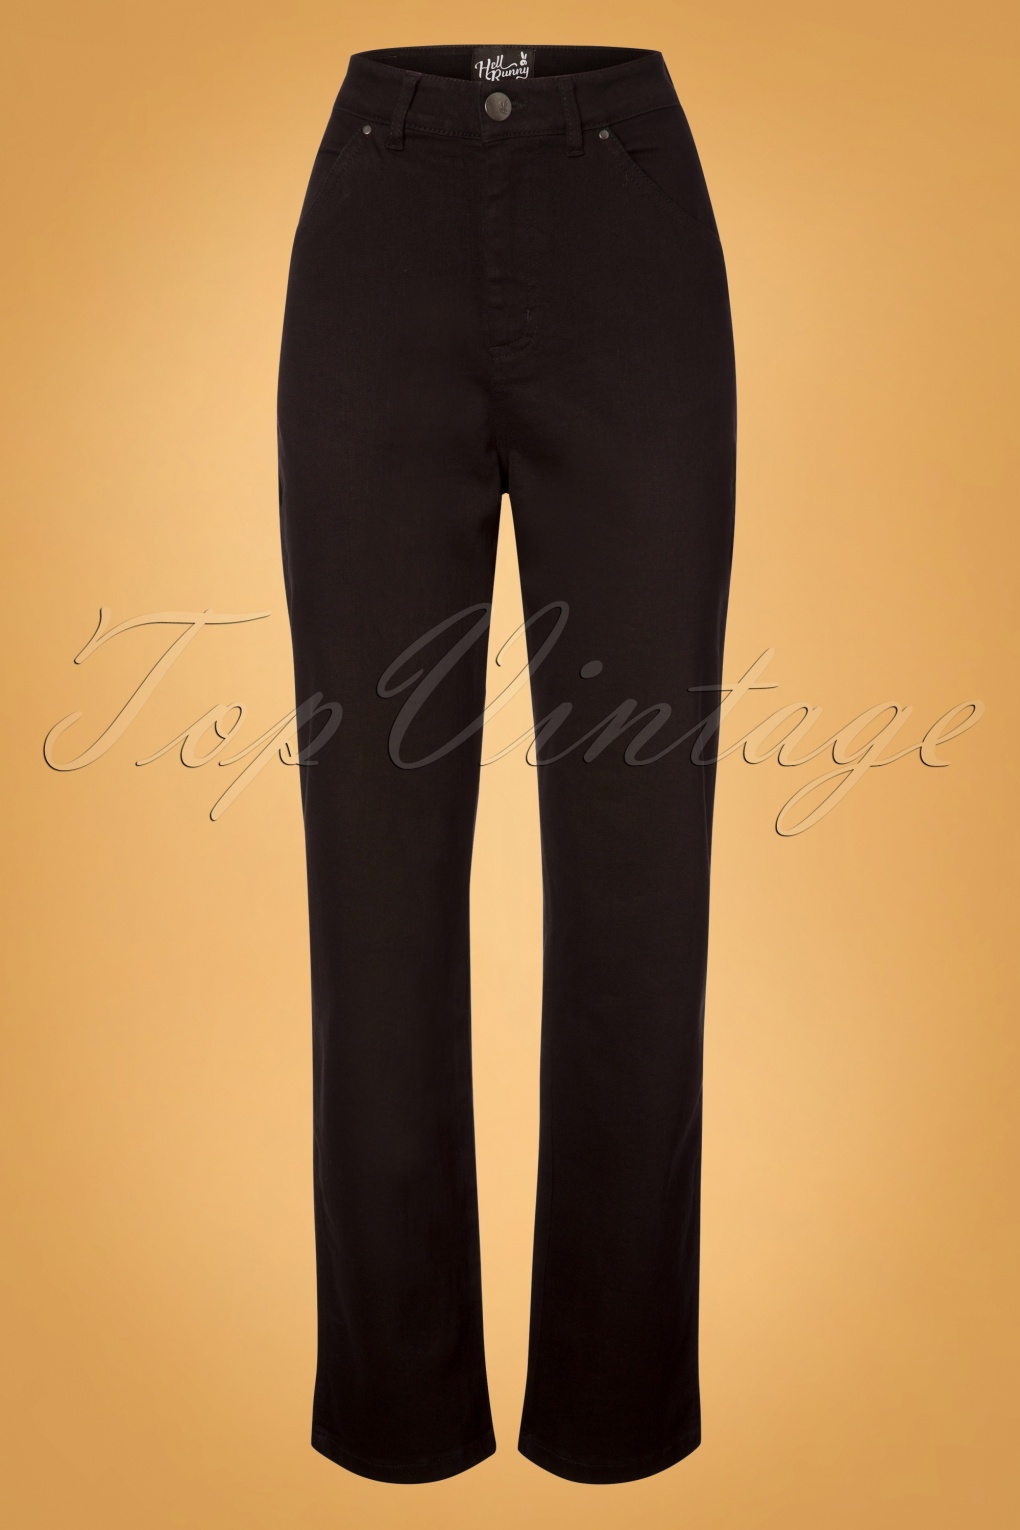 Vintage High Waisted Trousers, Sailor Pants, Jeans 50s Carpenter Jeans in Black £38.33 AT vintagedancer.com